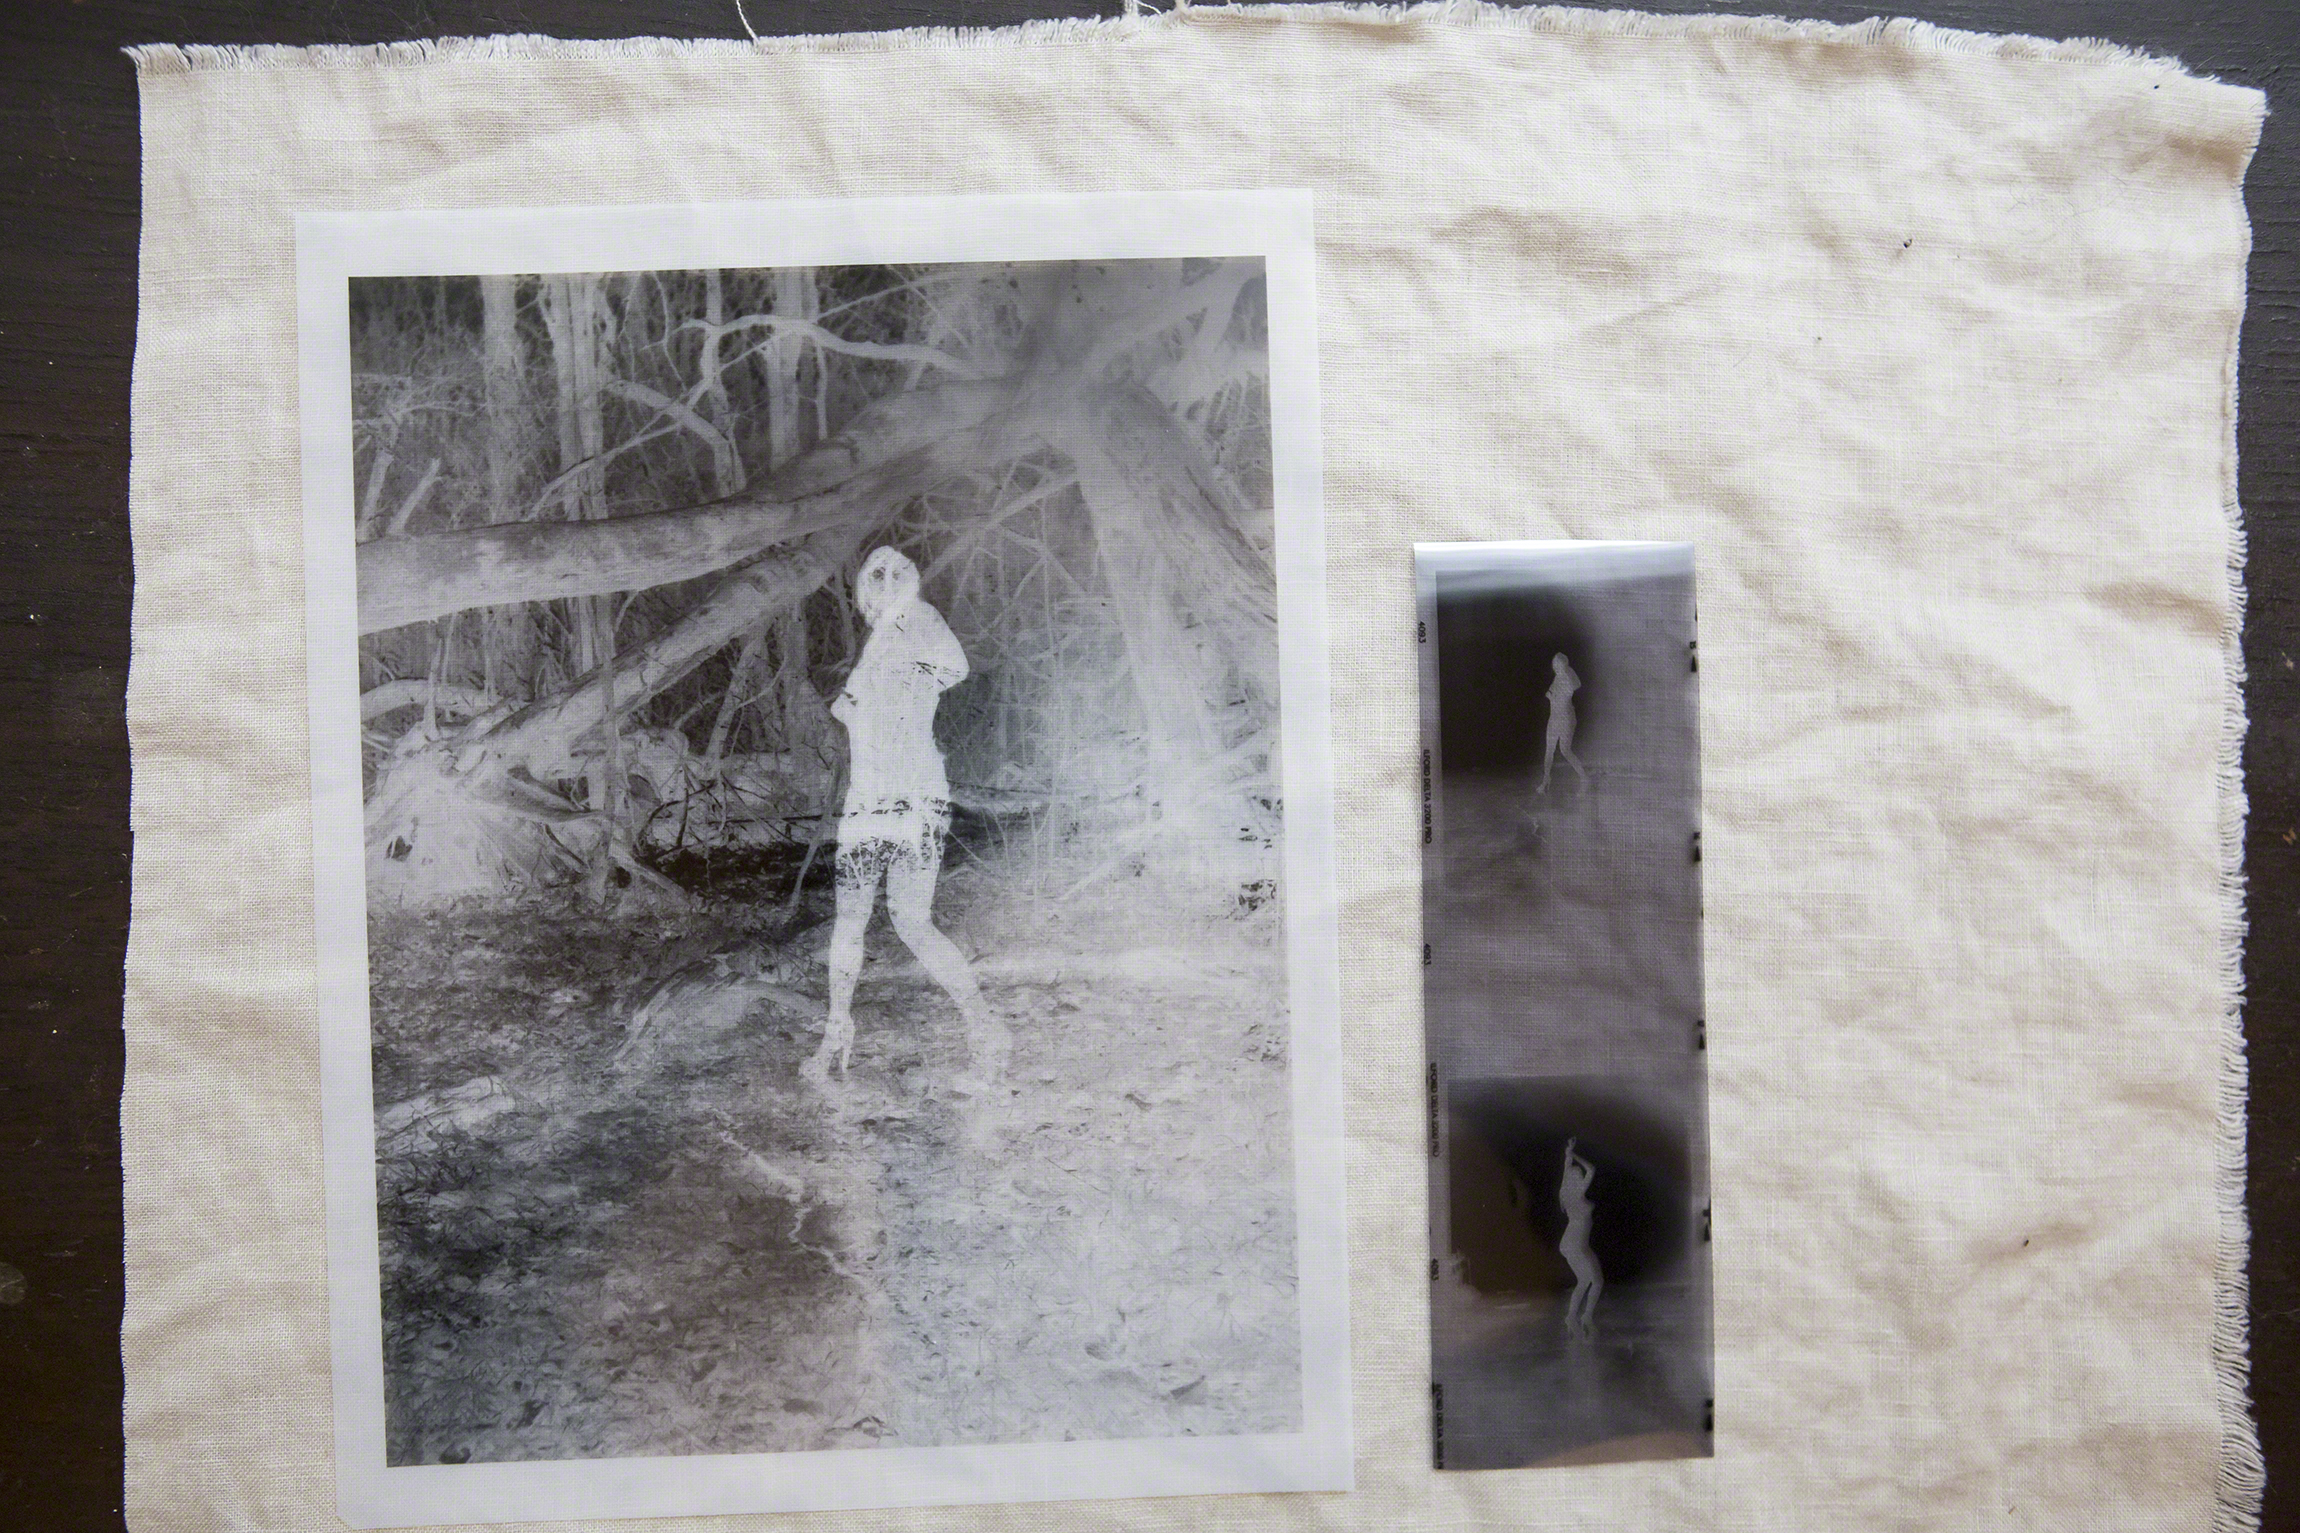 On the right is the 8x10 negative printed onto Pictorico OHP film... This allows for an 8x10 contact print instead of the smaller original negative on the right.